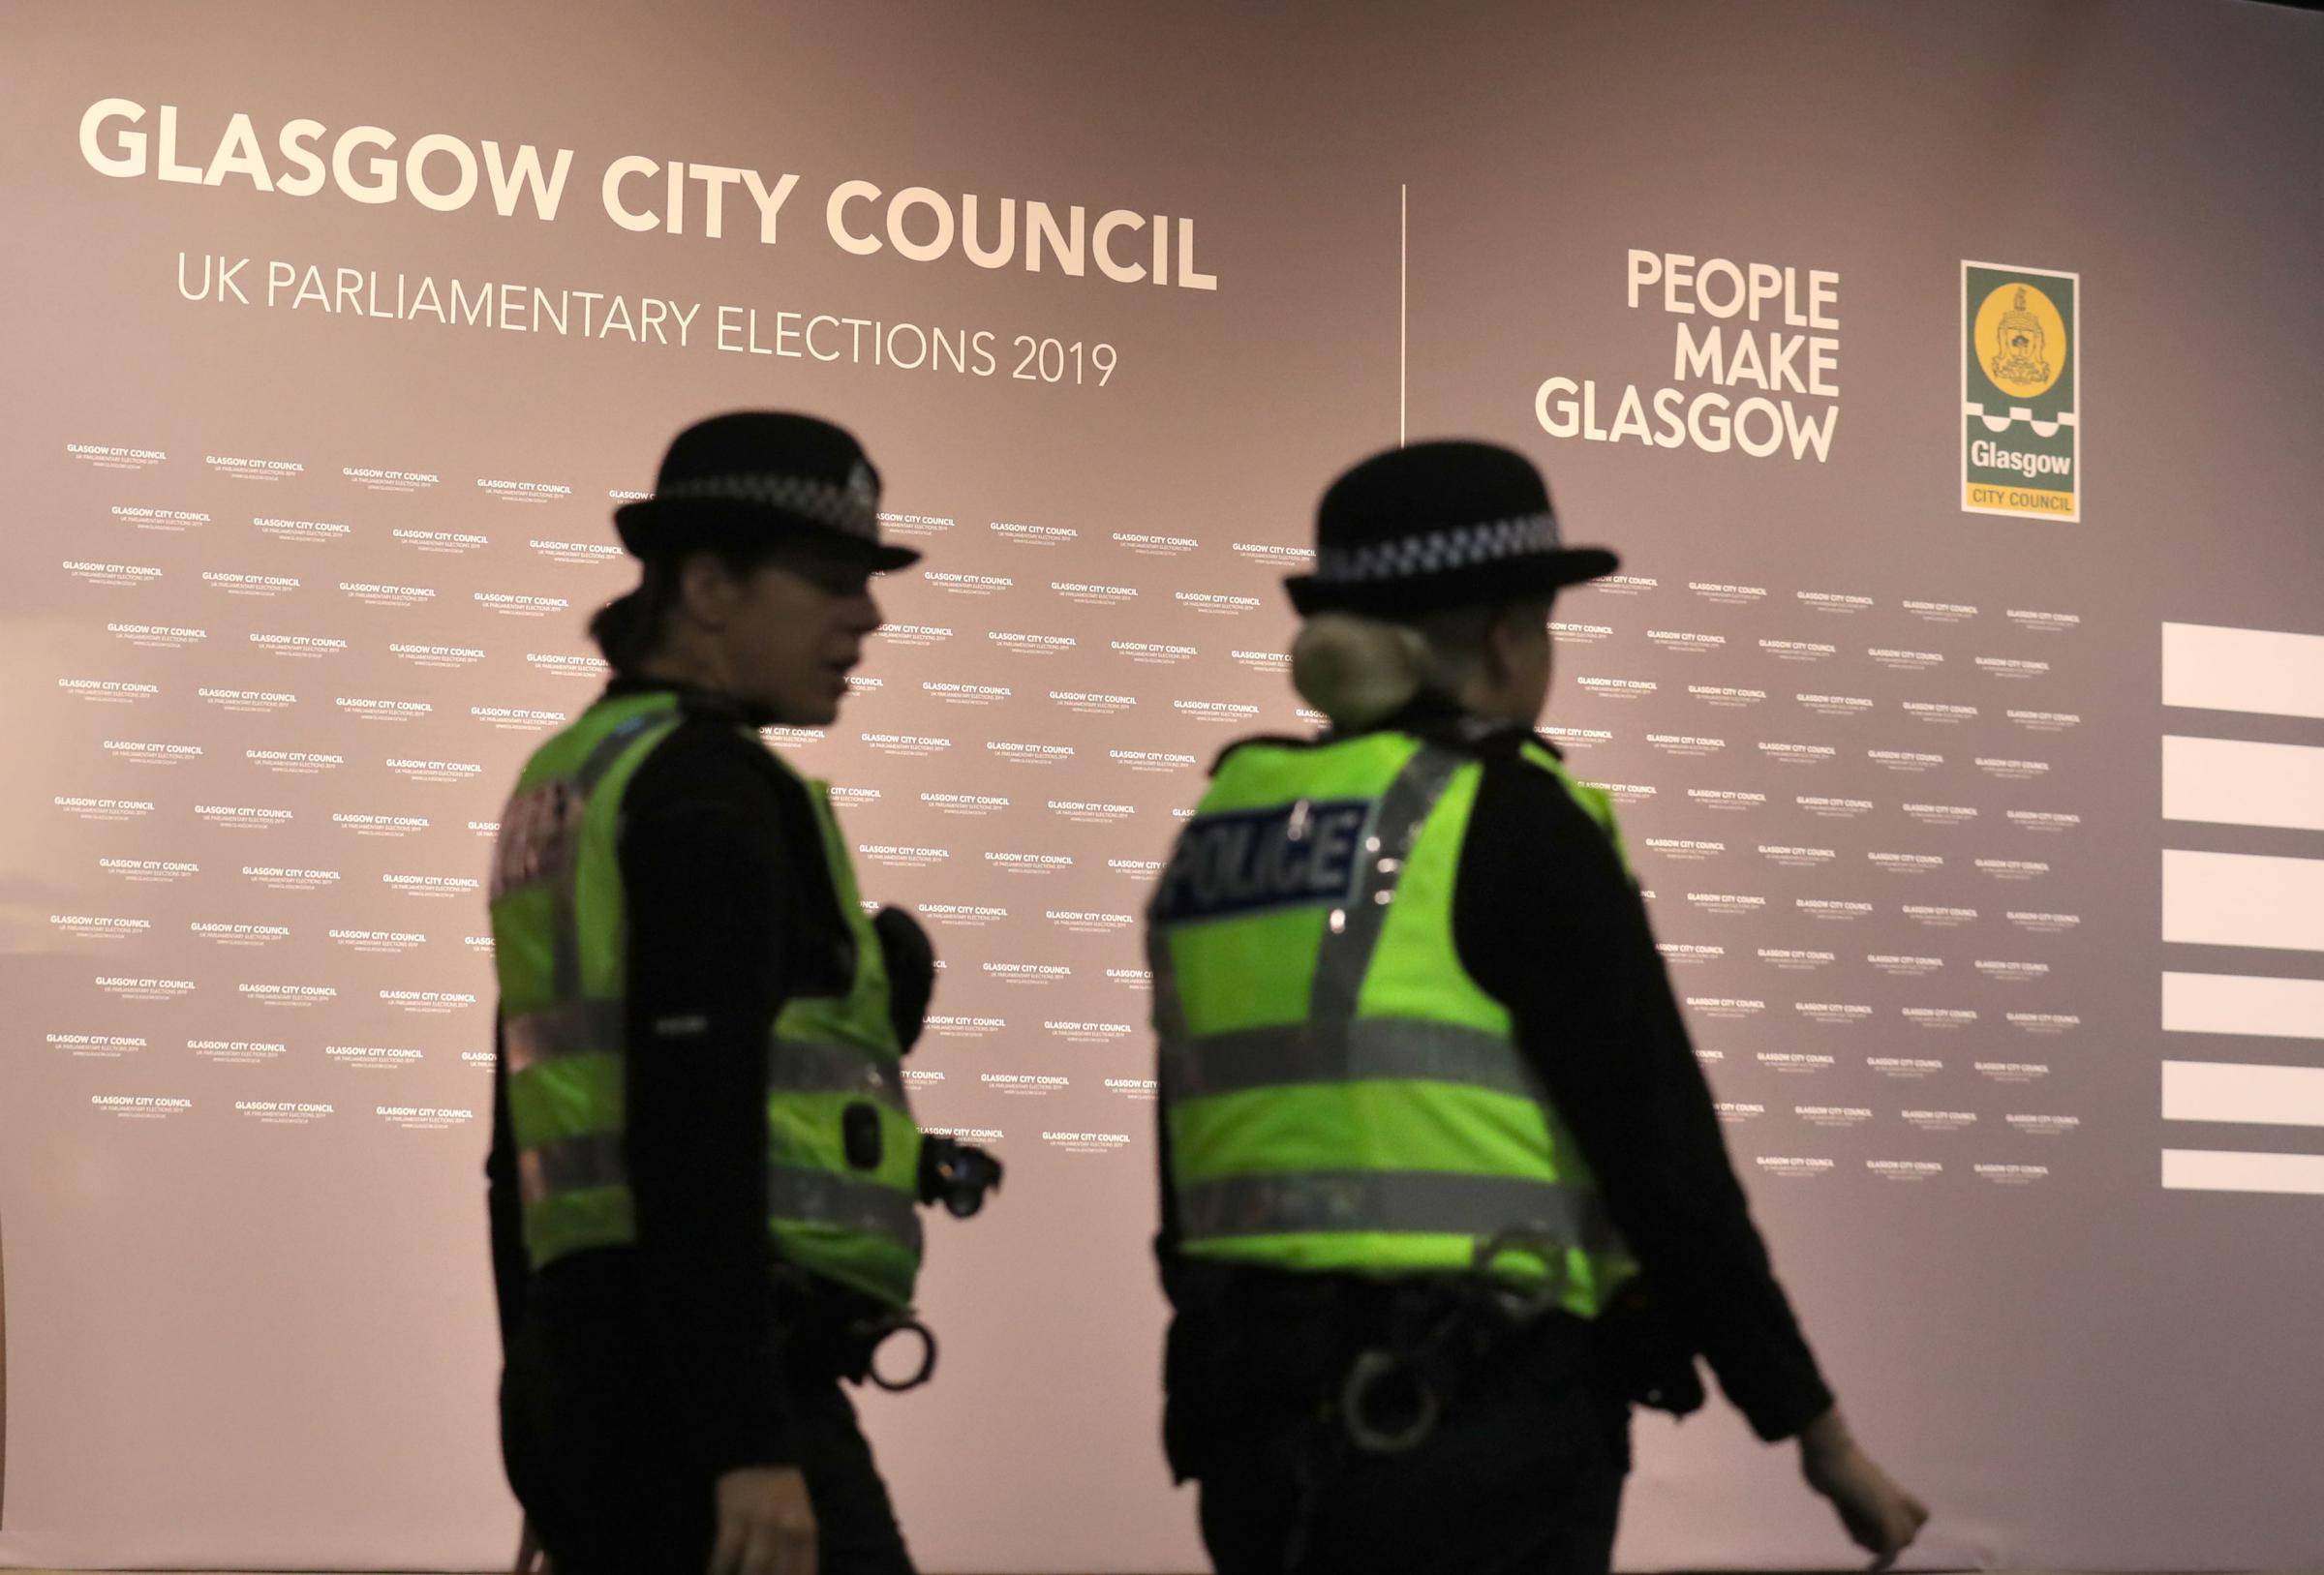 General Election: Police Scotland investigate suspected voter fraud